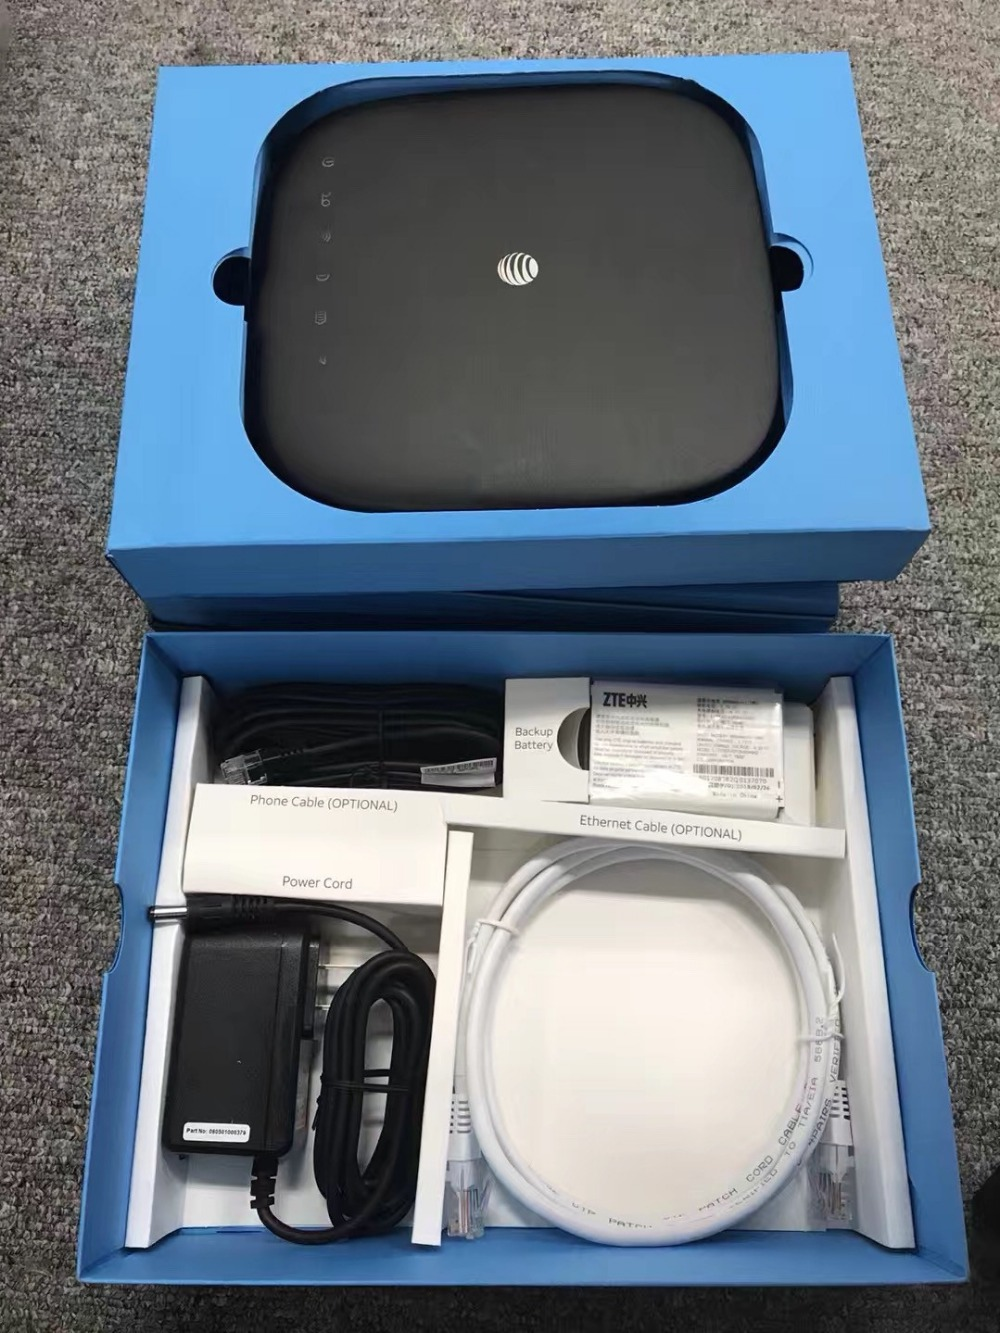 Moble internet ZTE MF279S mart Hub Support B2 B4 B12 AT&T LTE Wireless Internet Router Home Phone with Ethernet